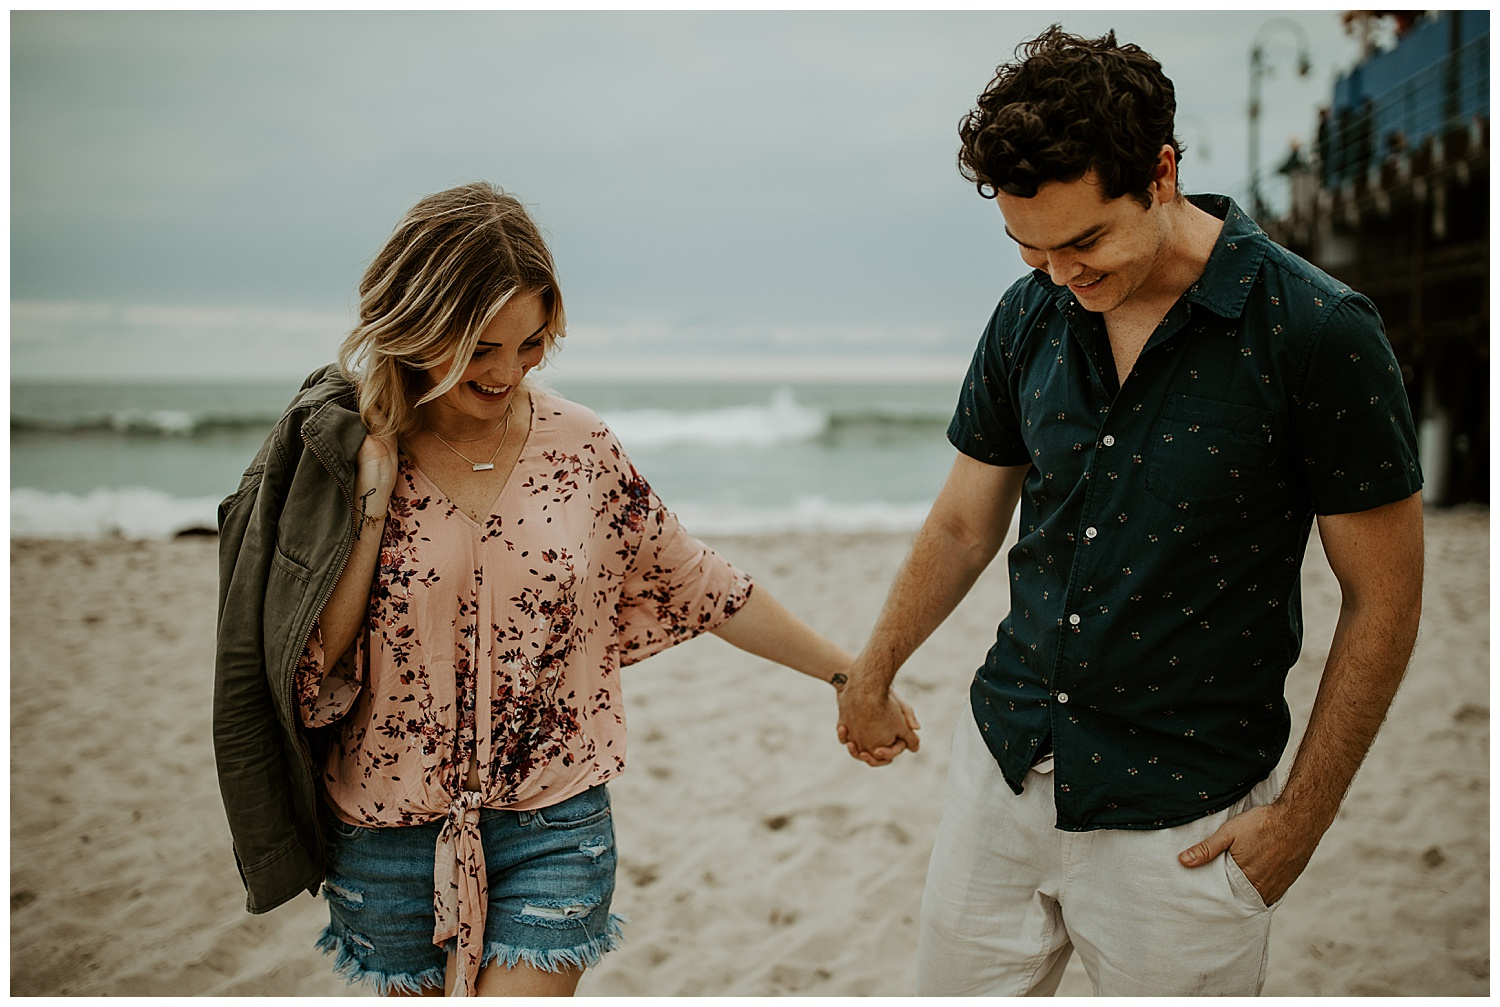 Laken-Mackenzie-Photography-Santa-Monica-Pier-Couples-Session-Kami-TJ-Malibu-Couples-Session14.jpg